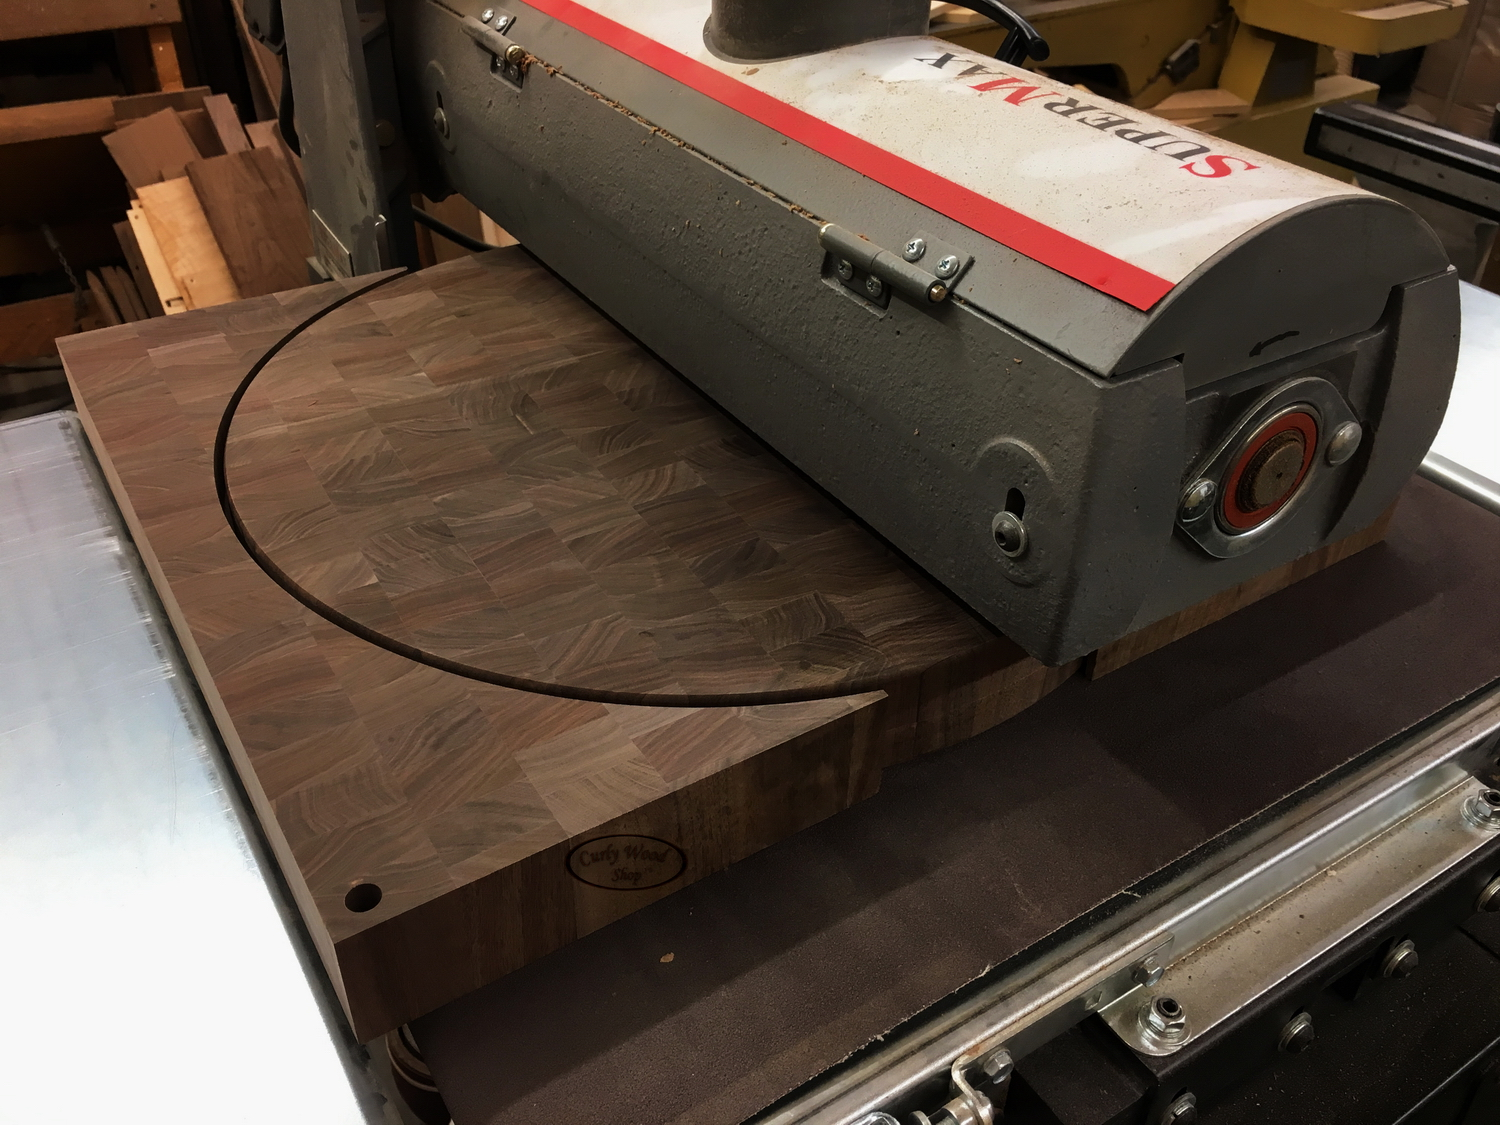 Drum sander snipe solution-011-sacrificial-board-prevent-snipe.jpg